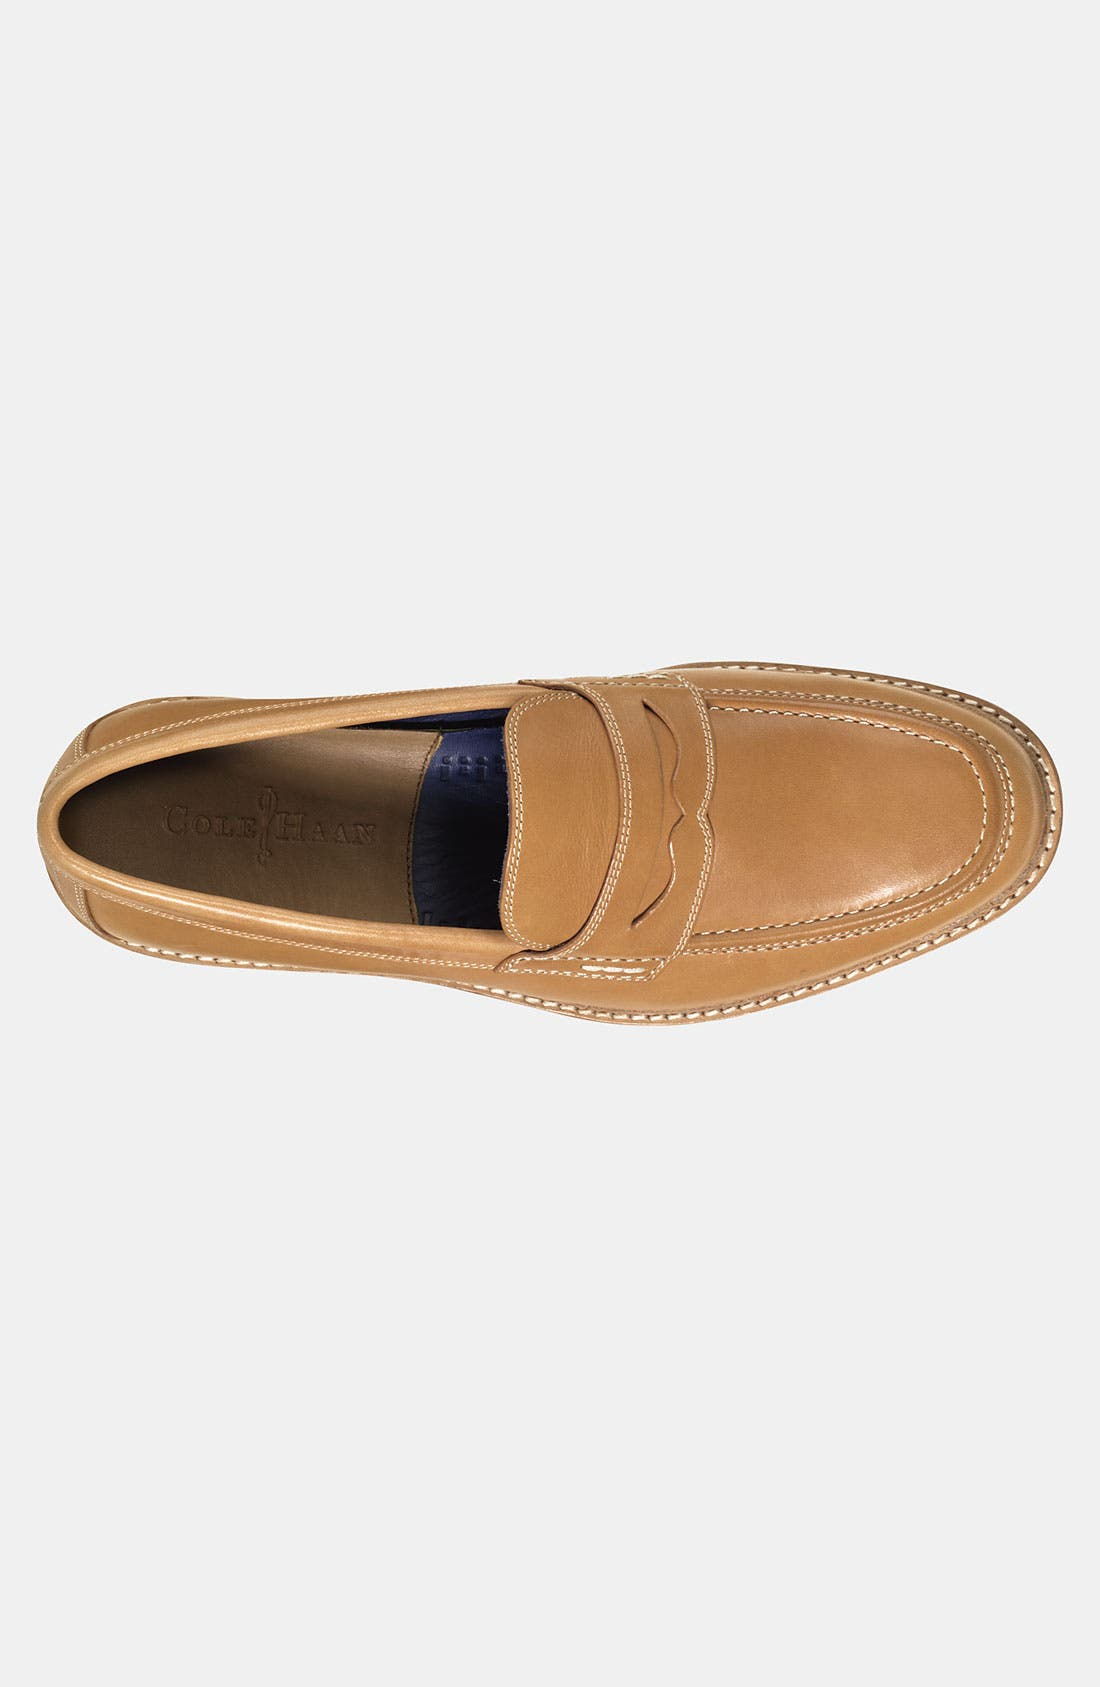 Alternate Image 3  - Cole Haan 'Cooper Square' Loafer   (Men)